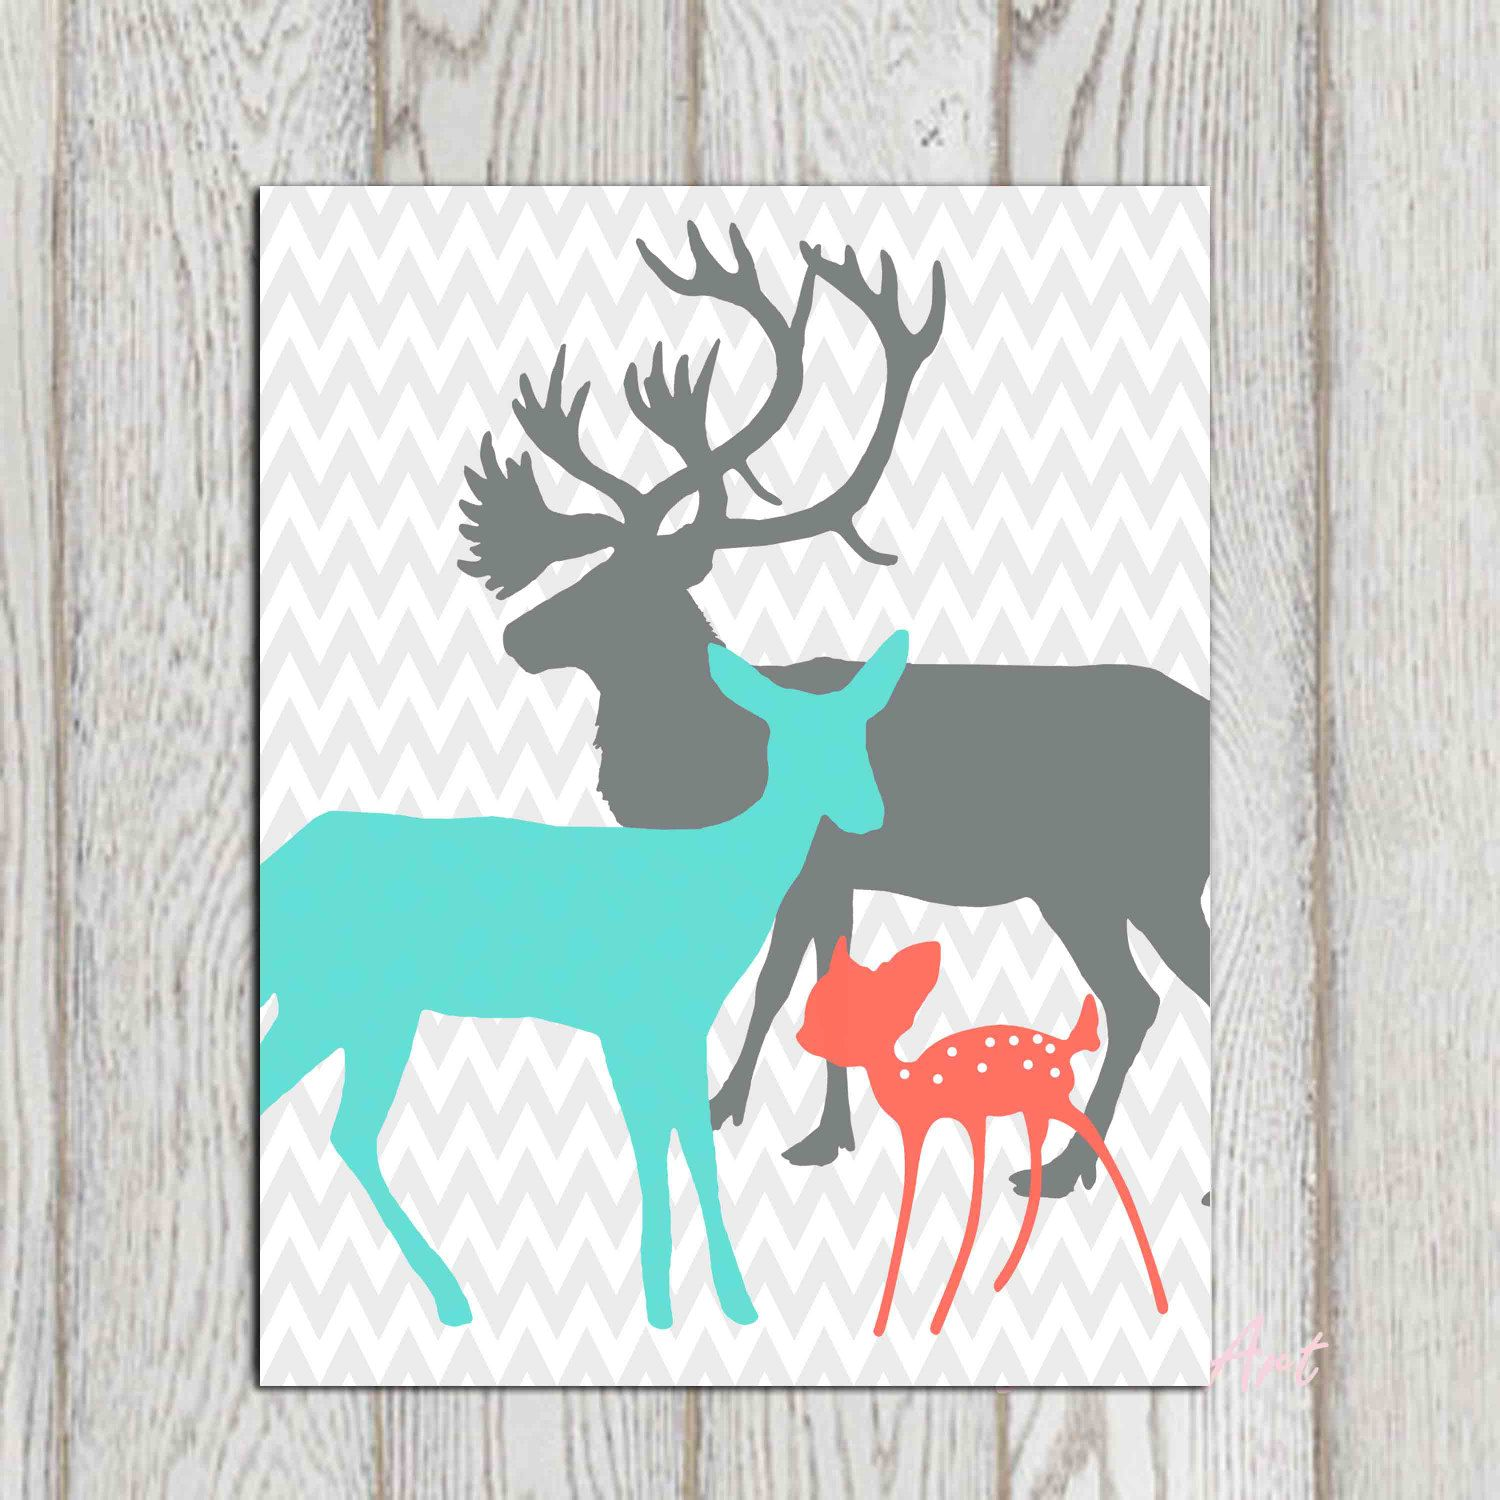 Teenage bedroom wall art - Coral Turquoise Gray Boy Girls Bedroom Decor Print Deer Family Printable Gray Chevron Nursery Wall Art Poster Baby Shower Gift Idea Download